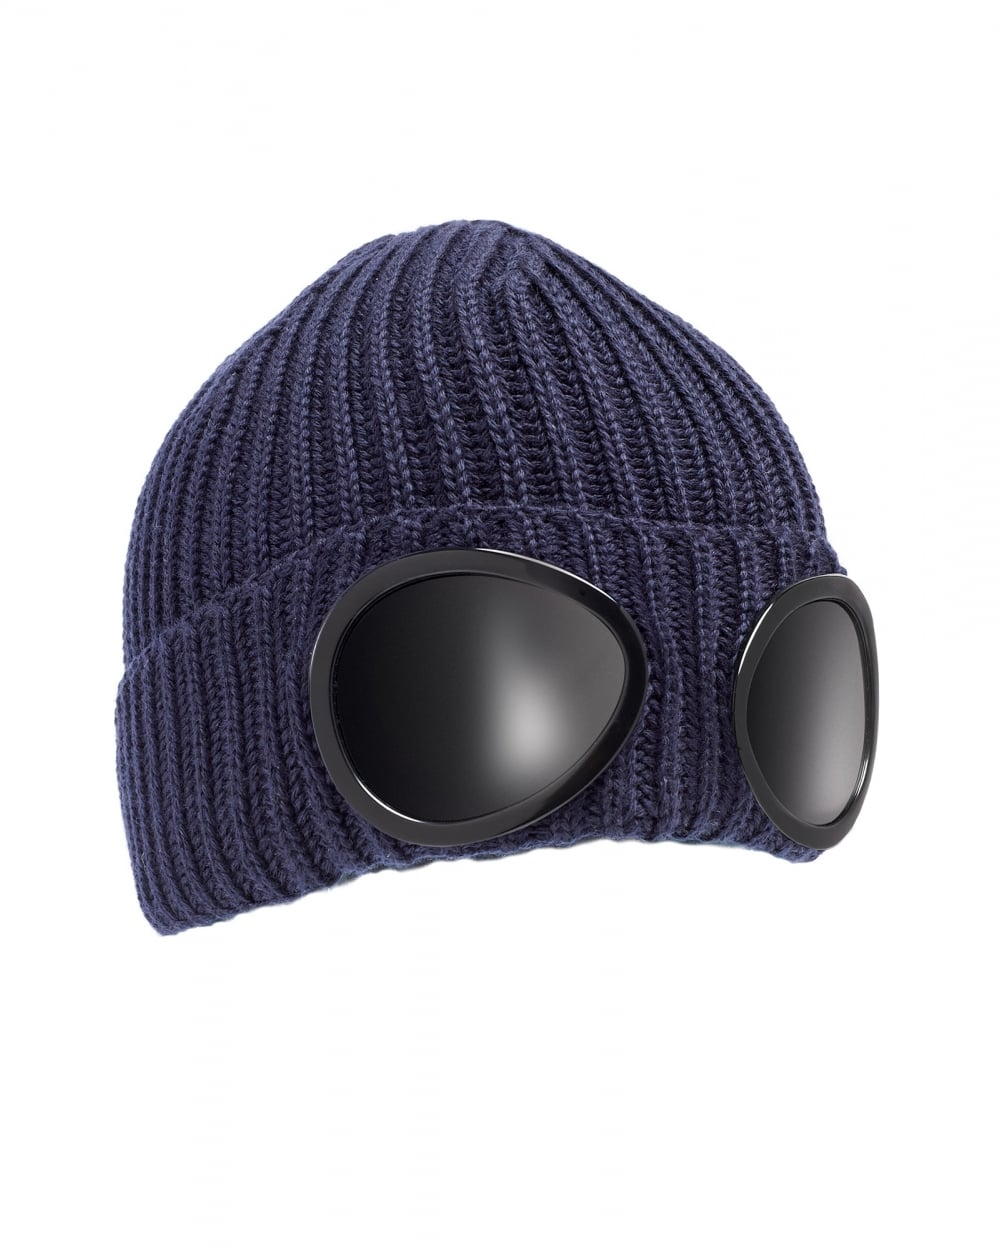 C.P. Company Mens Ribbed Knit Goggle Navy Blue Beanie Hat f9a95403922